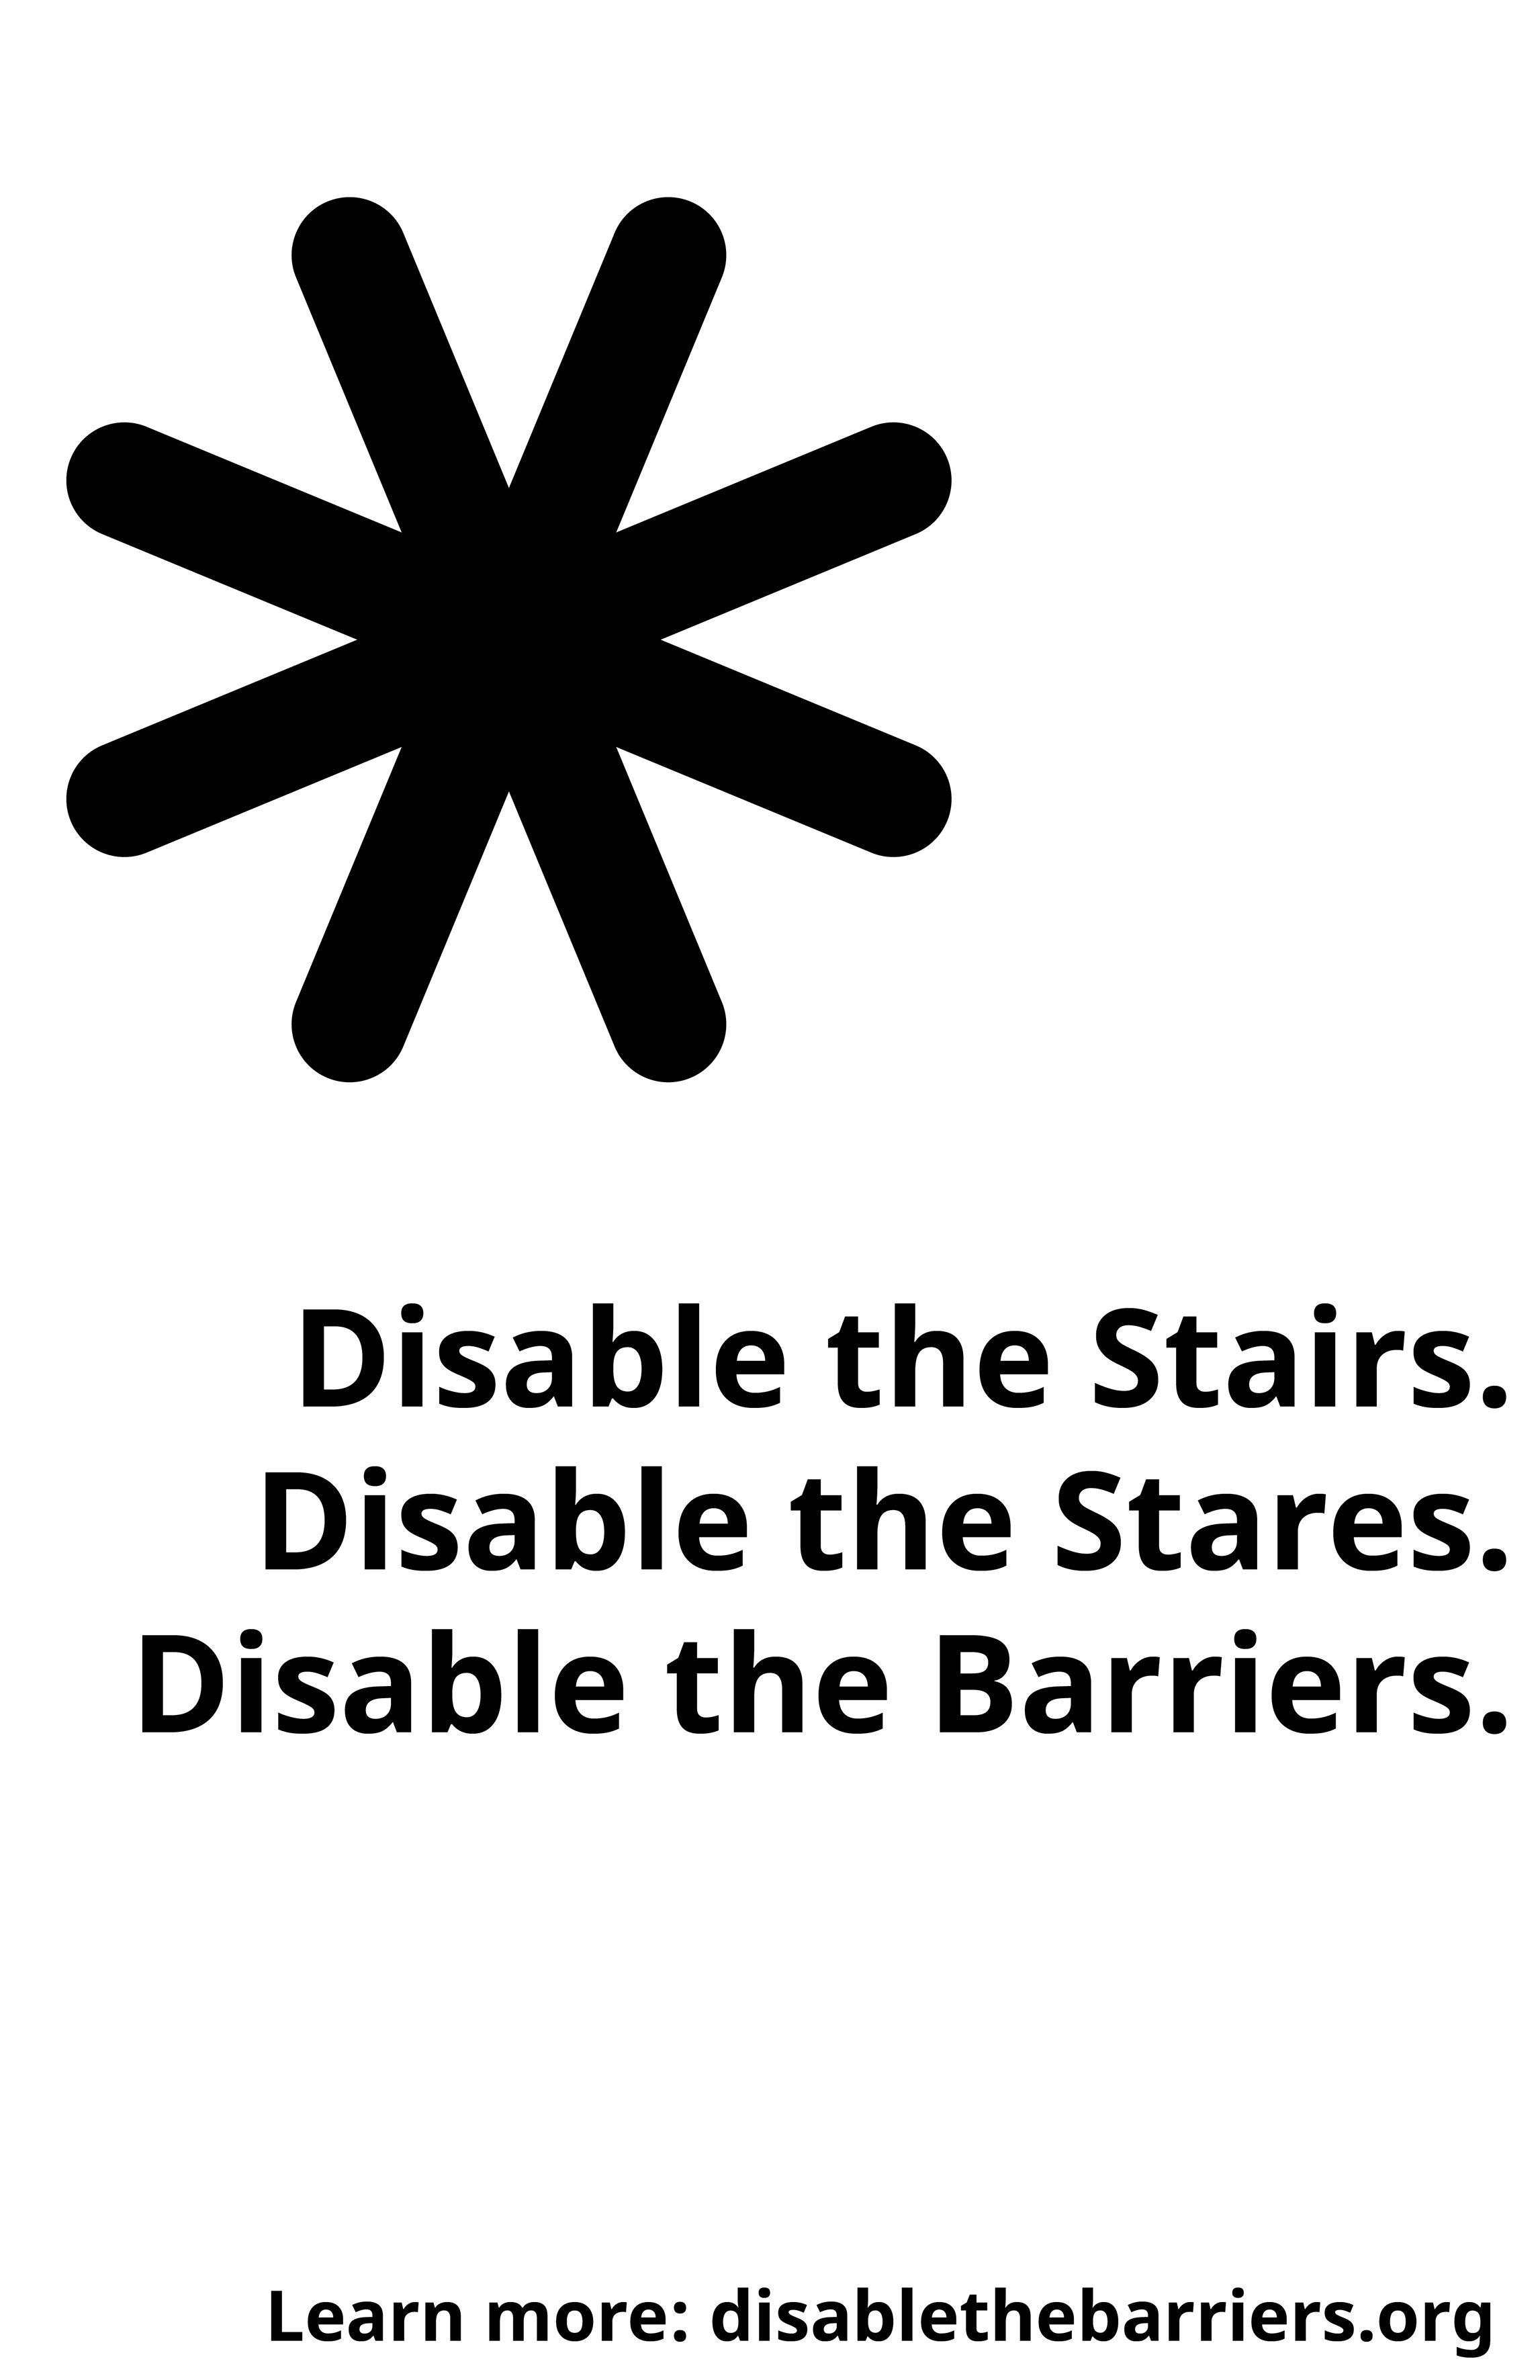 Poster displaying the Disable the Barriers slogan, tagline and URL, over a full white background.